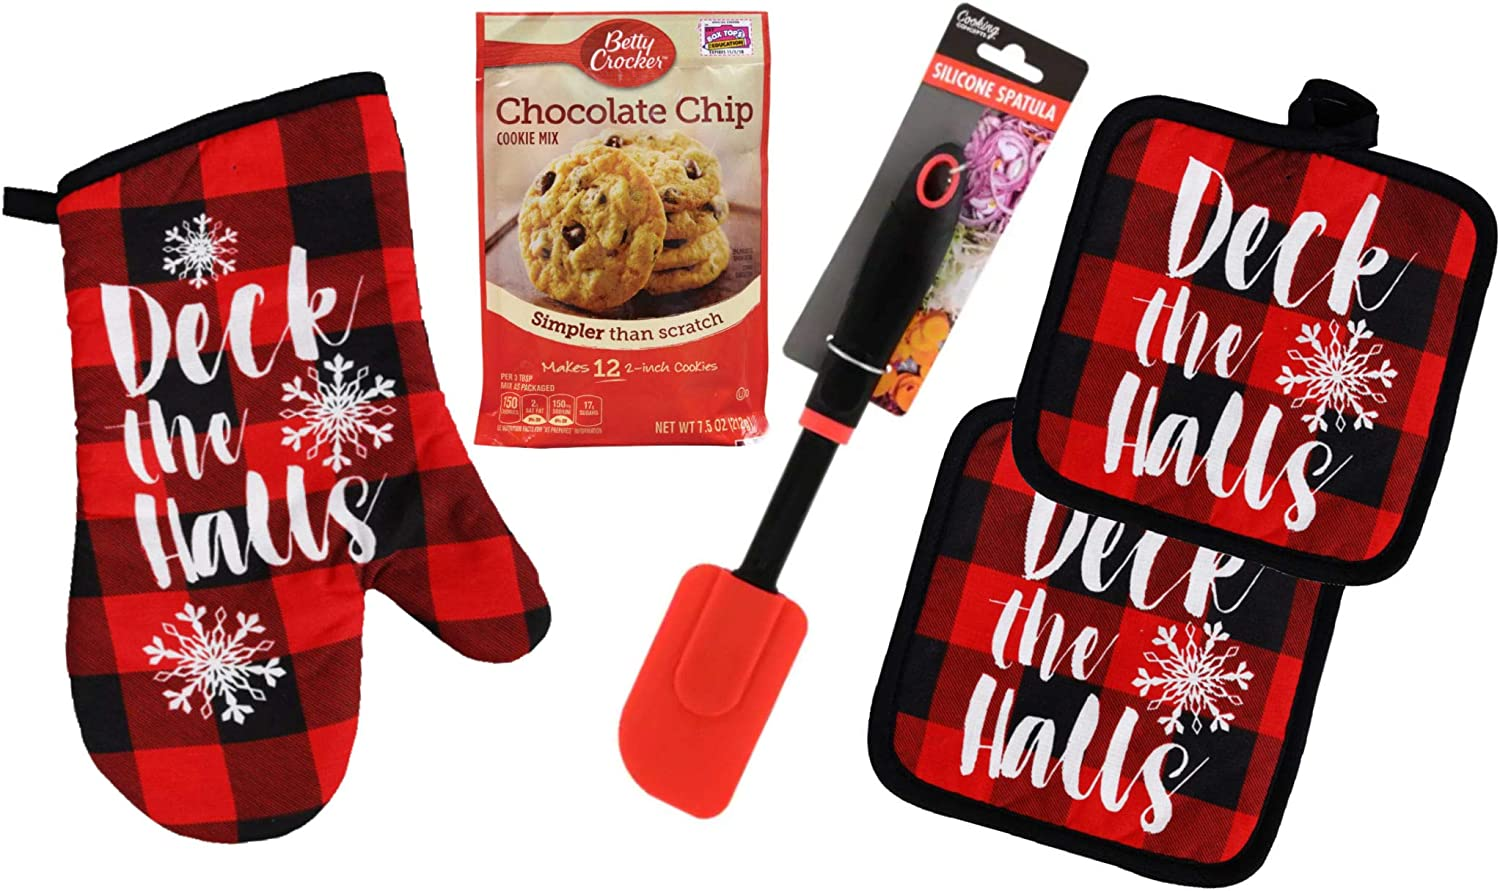 Buffalo Check Kitchen Pot Holders and Oven Mitt Set with Chocolate Chip Cookie Mix and Spatula - Red & Black Plaid - Modern Farmhouse Decor Set (Deck The Halls)